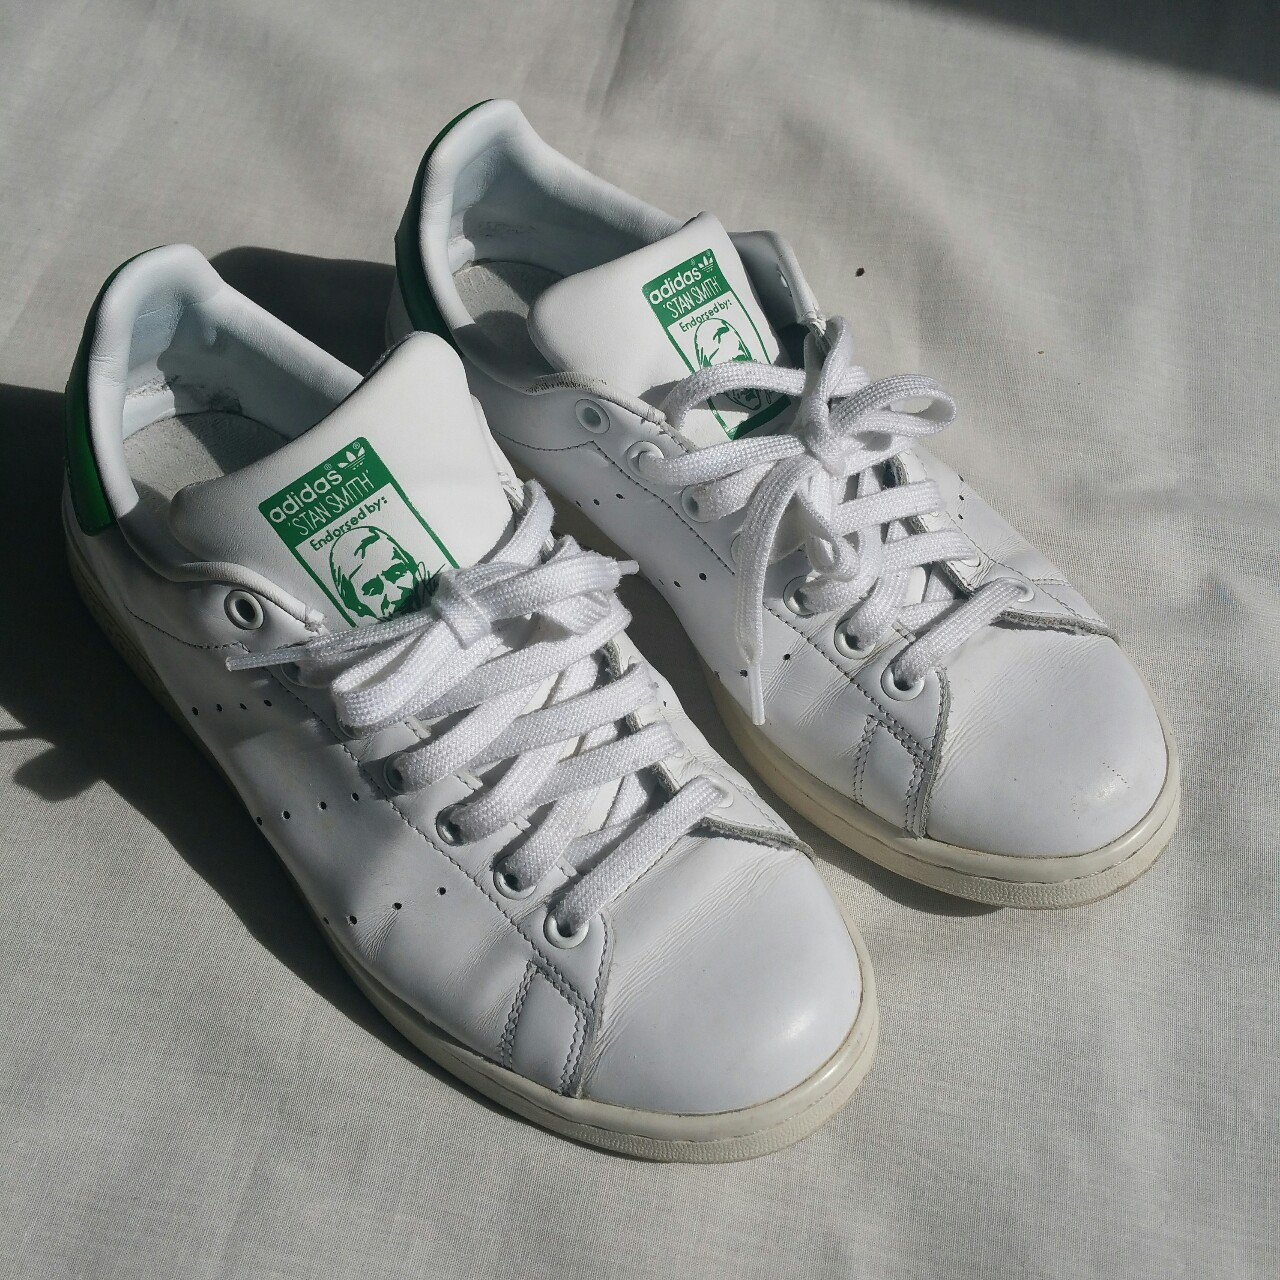 Adidas Stan Smith White Green Trainers - UK 8 65e7e67b0